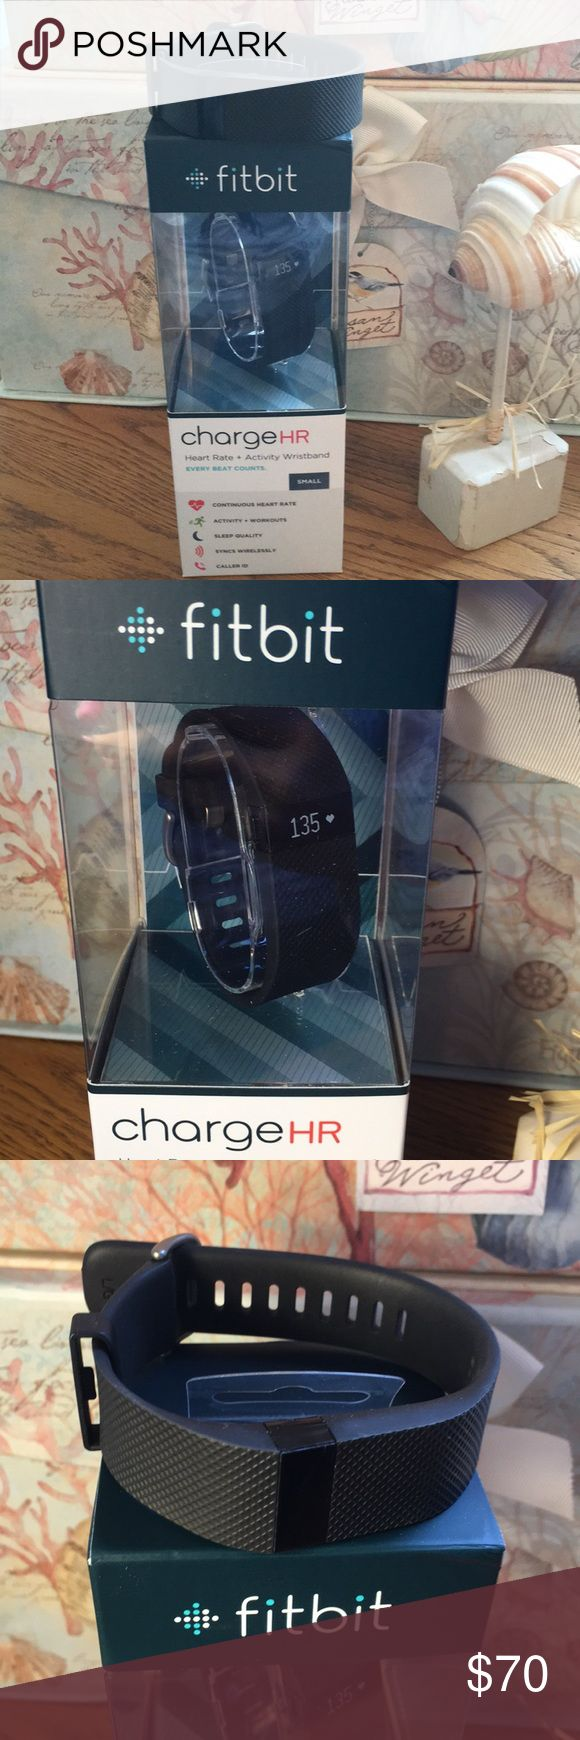 2 Fitbit's Charge HR Wireless Activity Wristbands. 2 Fitbits, 1 Small size and 1 Large size. Sync stats wirelessly & automatically to your computer and smartphone, including Android, iOS and Windows. Set goals, log food, see progress, analyze trends, earn achievement badges through your mobile & online dashboard. Share & compete with friends & family on the leaderboard and in New Fitbit challenges. PurePulse Heart Rate. Activity Tracking. Auto Sleep & Silent Alarm. Exercise Tracking. Caller…